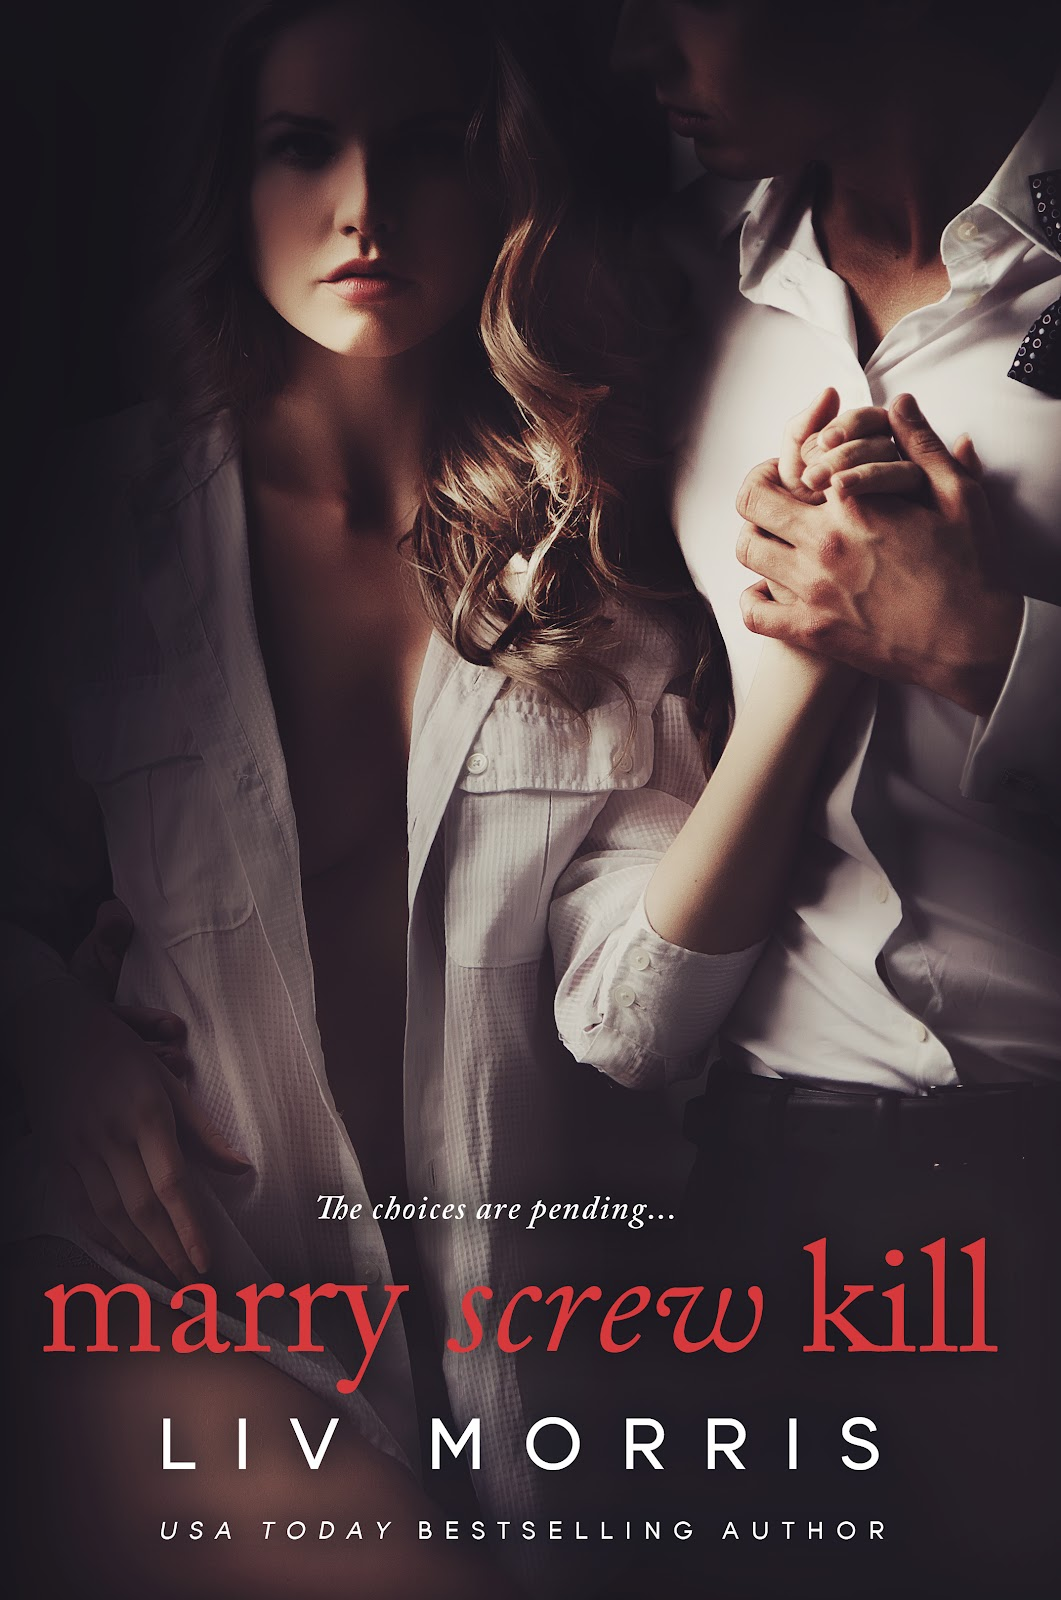 LMMarryScrewKillBookCover6x9-UPDATED2.jpg